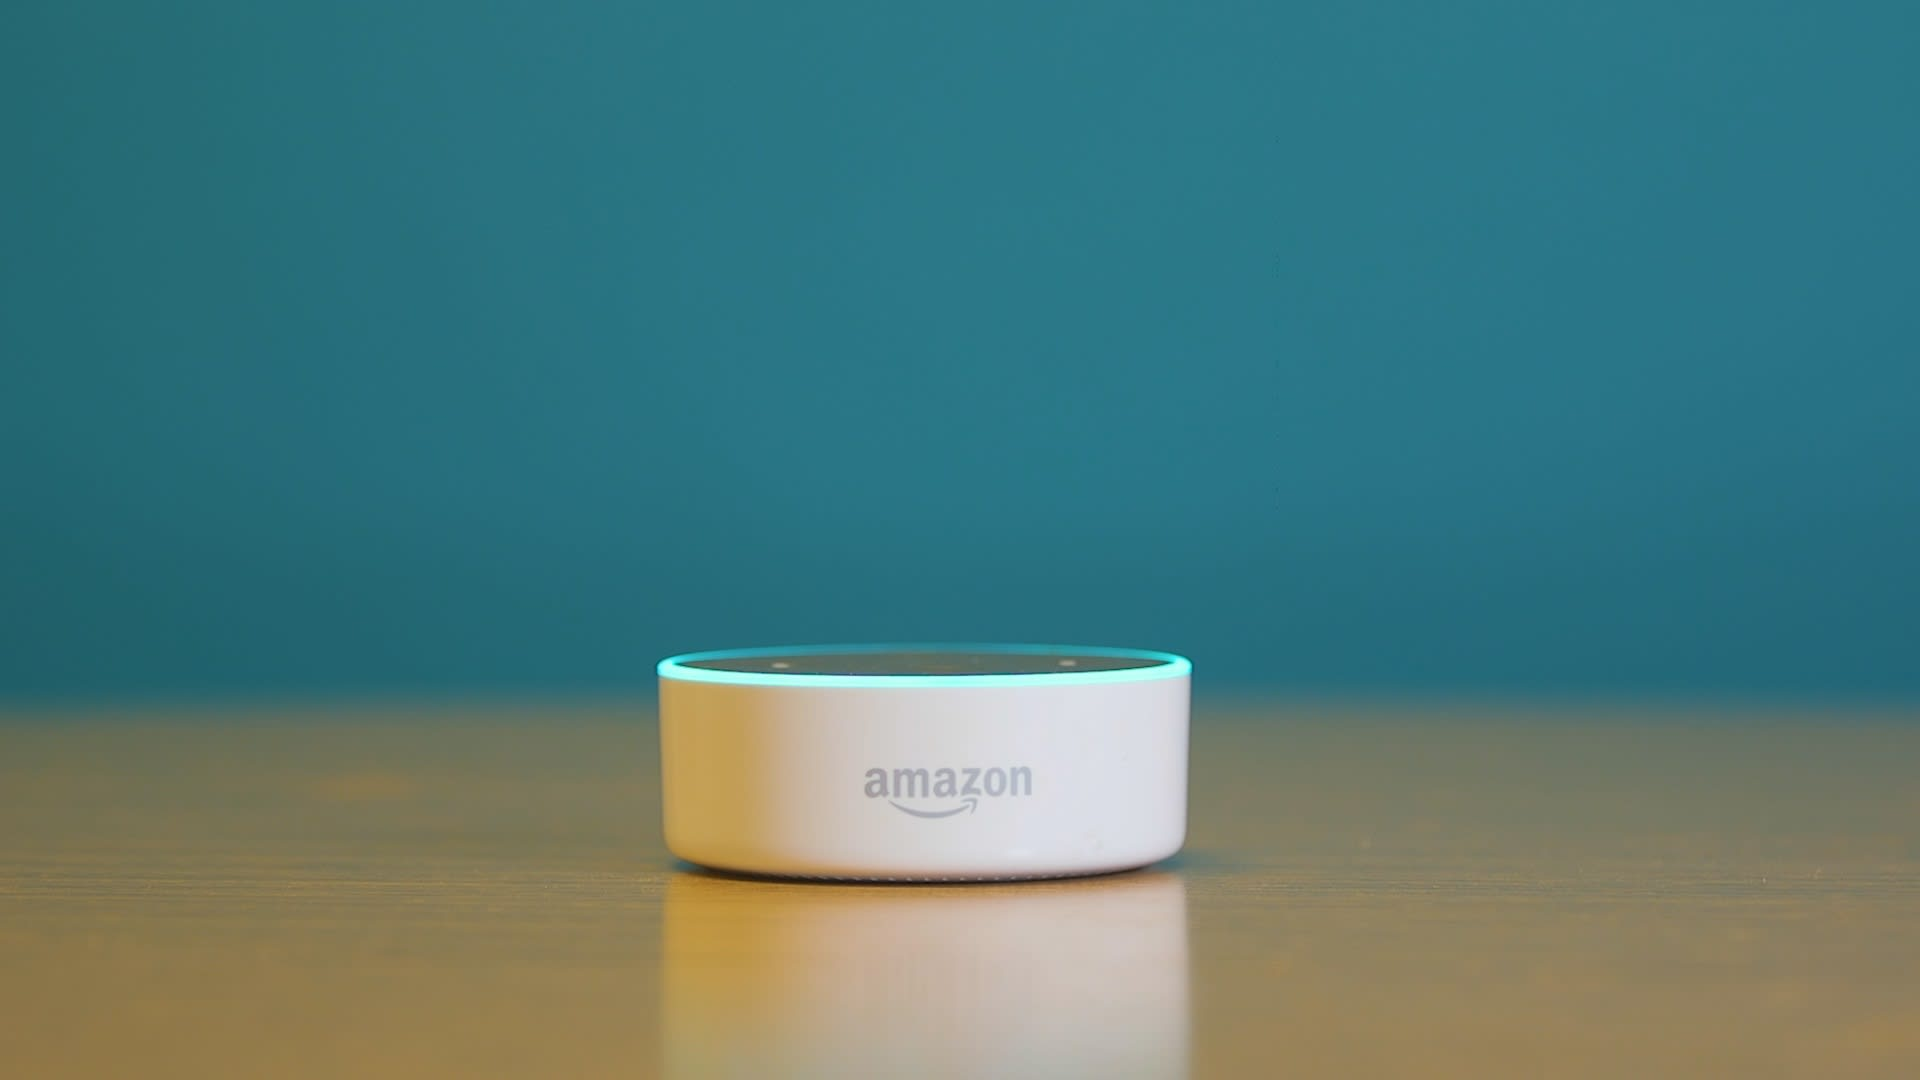 Does apple music work with amazon dot